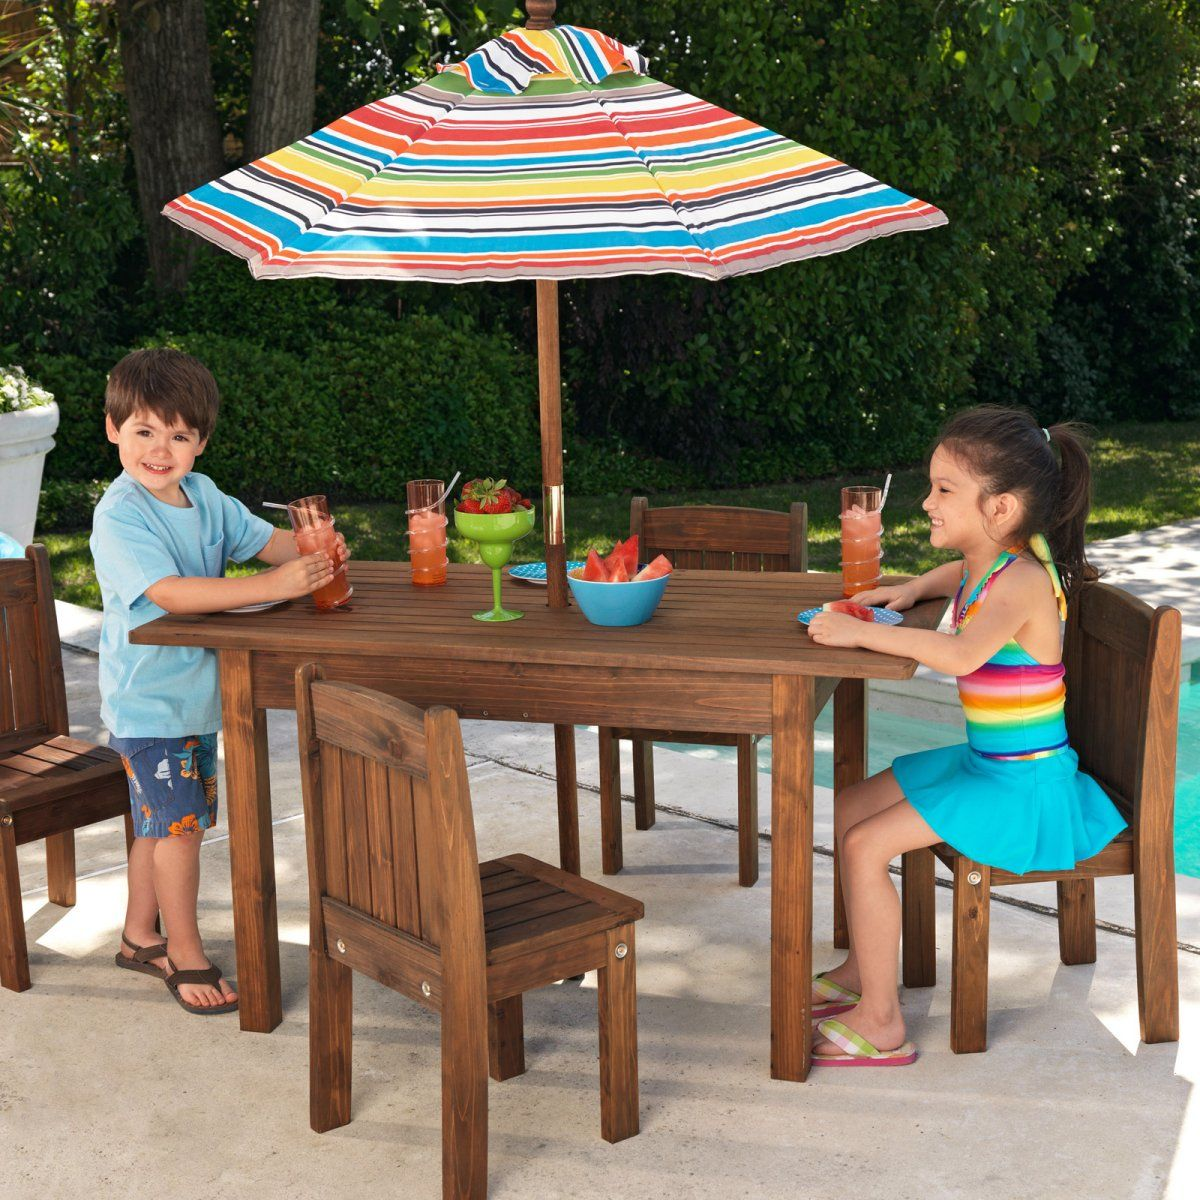 KidKraft Outdoor Table And 4 Stacking Chairs With Striped Umbrella   Kids  Tables U0026 Chairs At